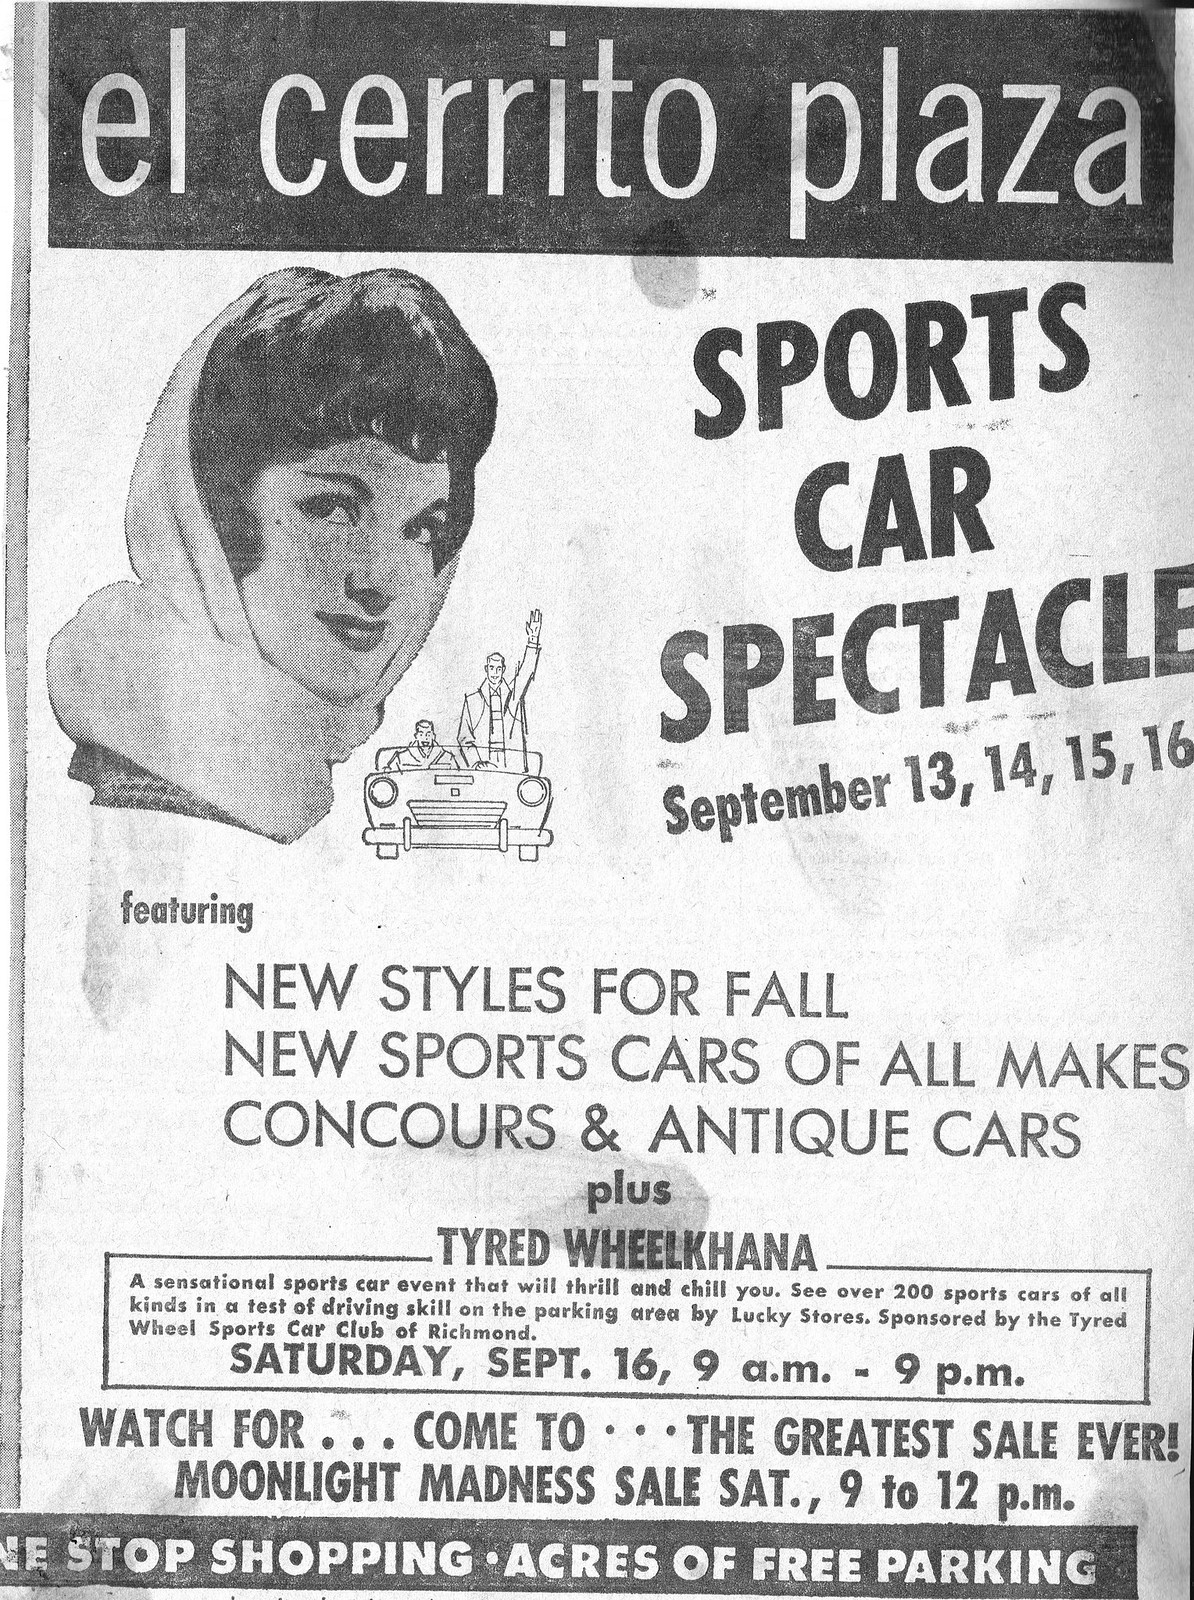 ec plaza sports car spectacle 1961a